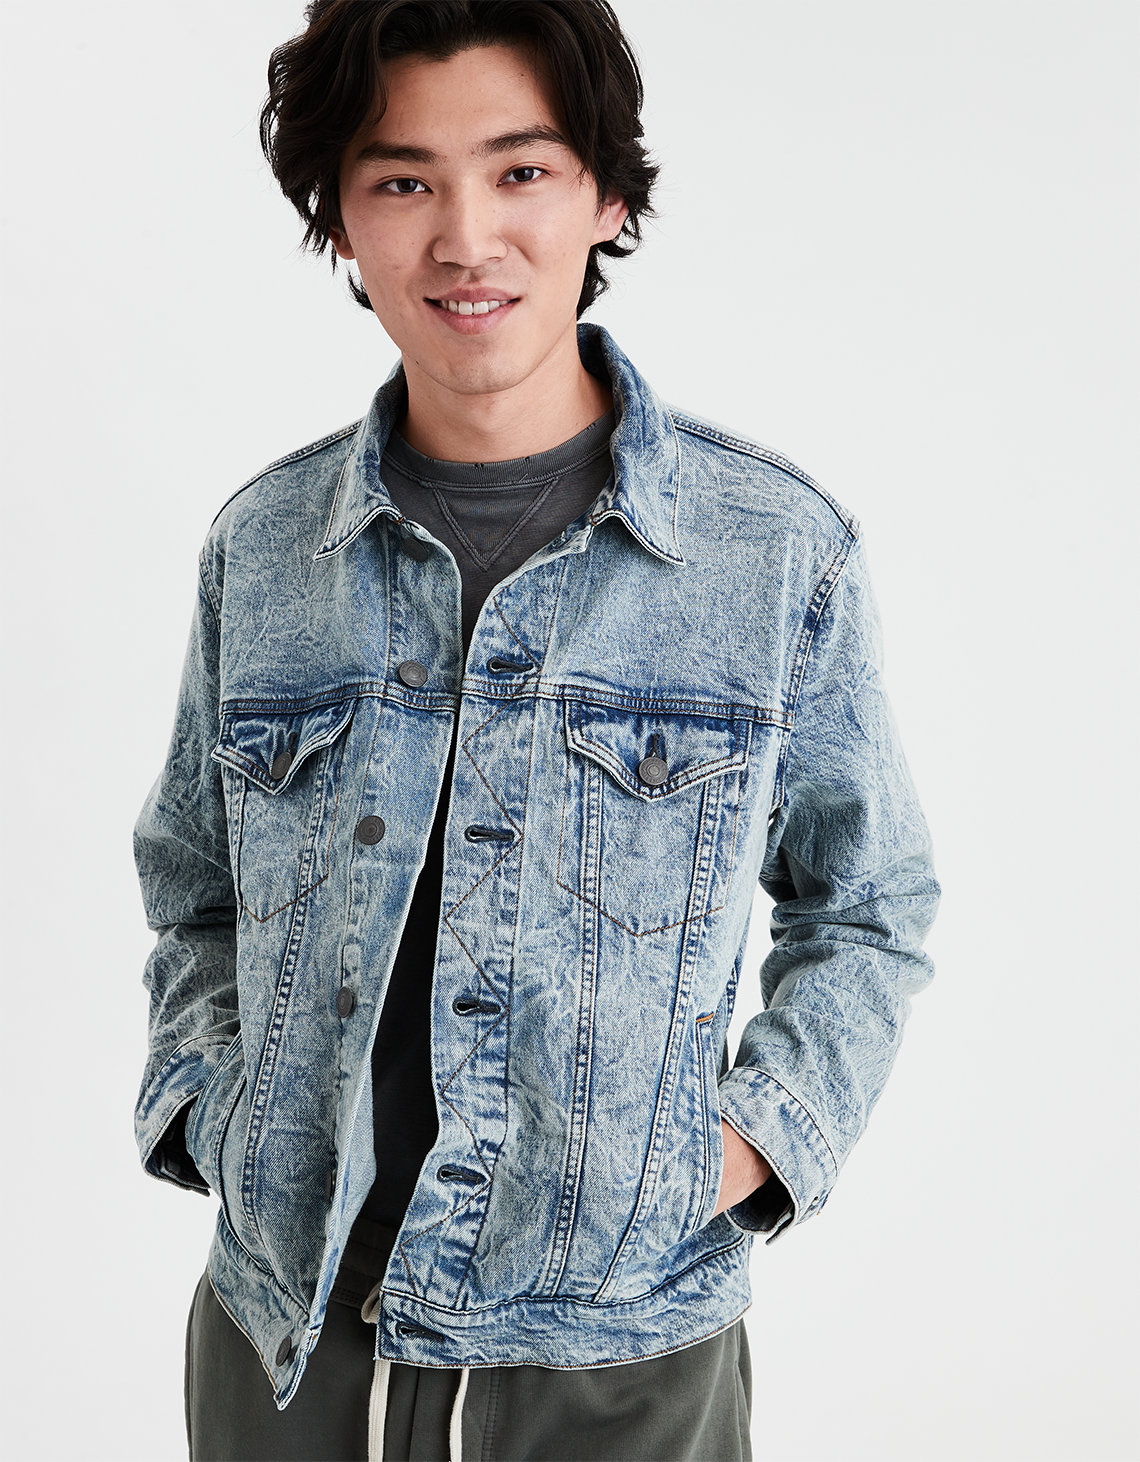 44e8957123 AE Acid Wash Denim Jacket. Placeholder image. Product Image